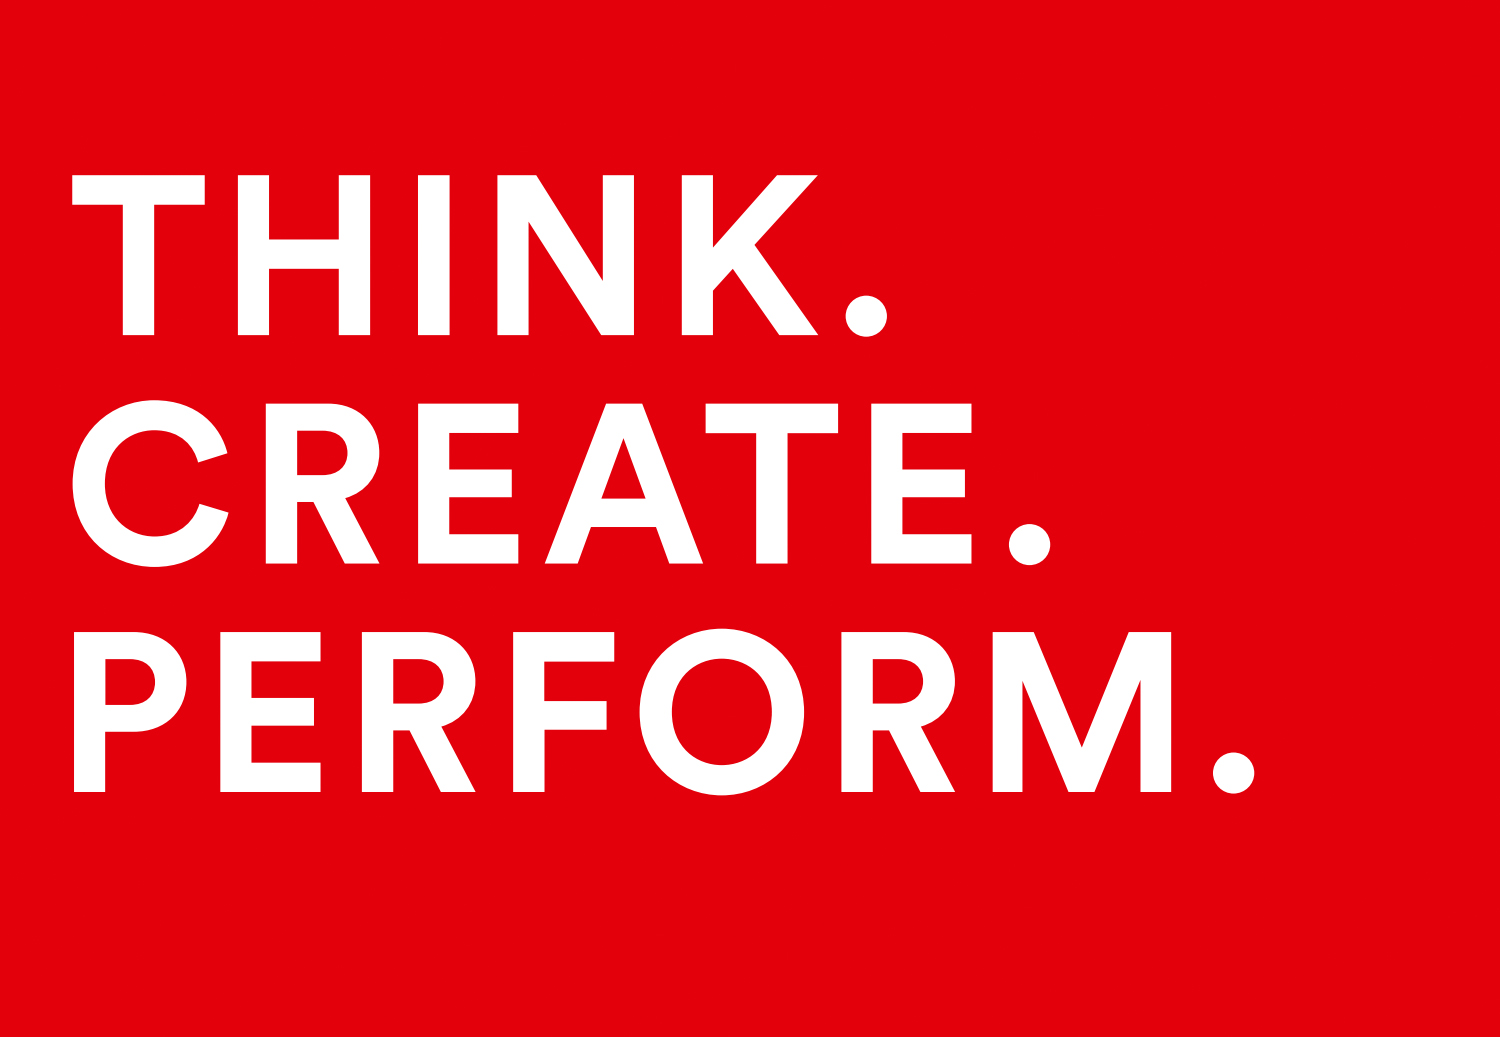 PMCC Consulting Slogan Think - Create - Perform